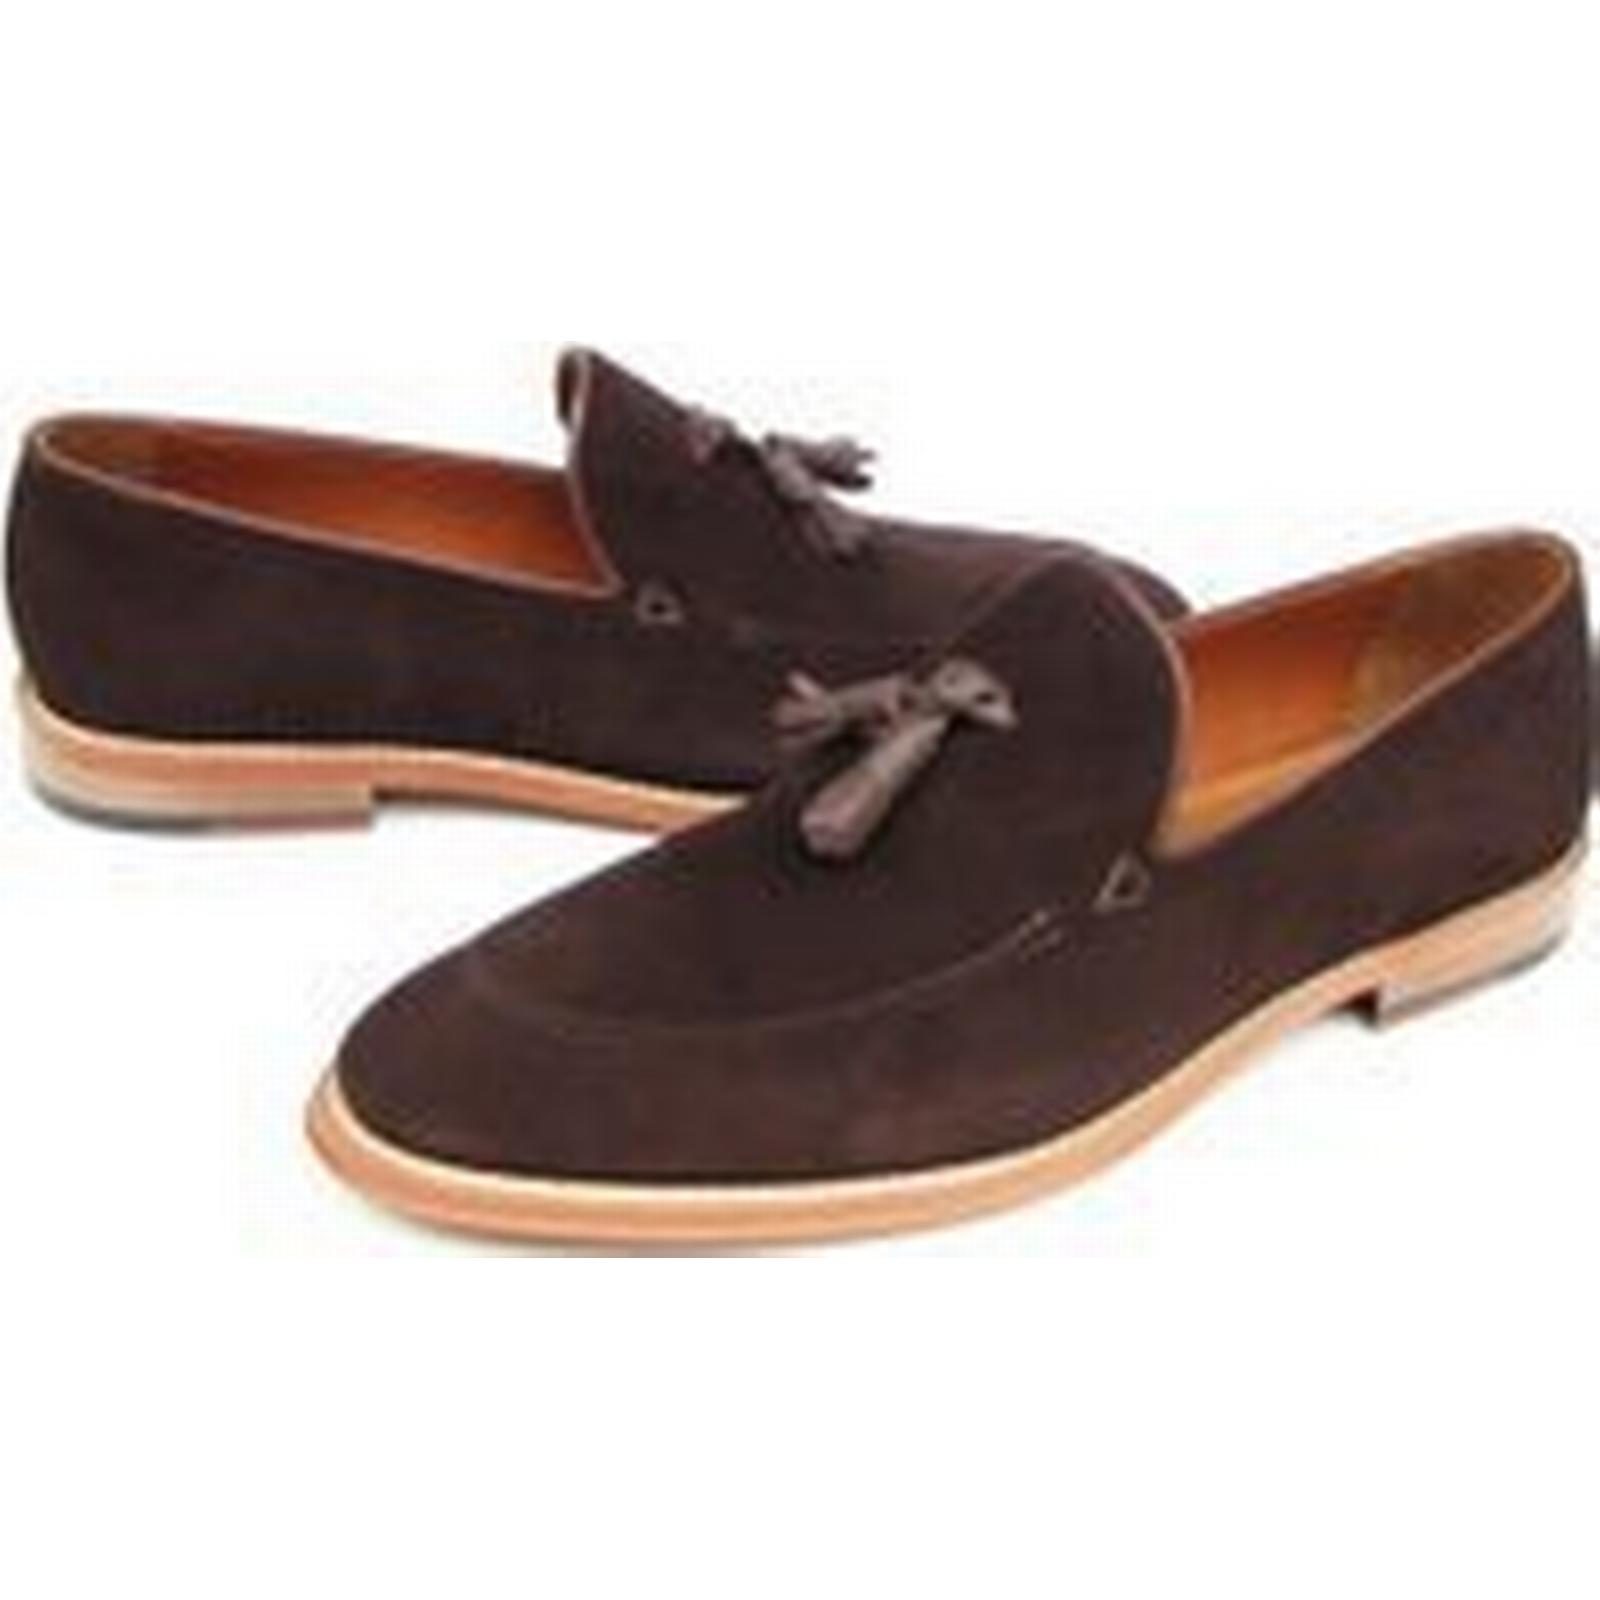 Bonanza (Global) Handmade men slip ons brown suede leather shoes shoes, Men suede mocassins brown shoes leather d3e939